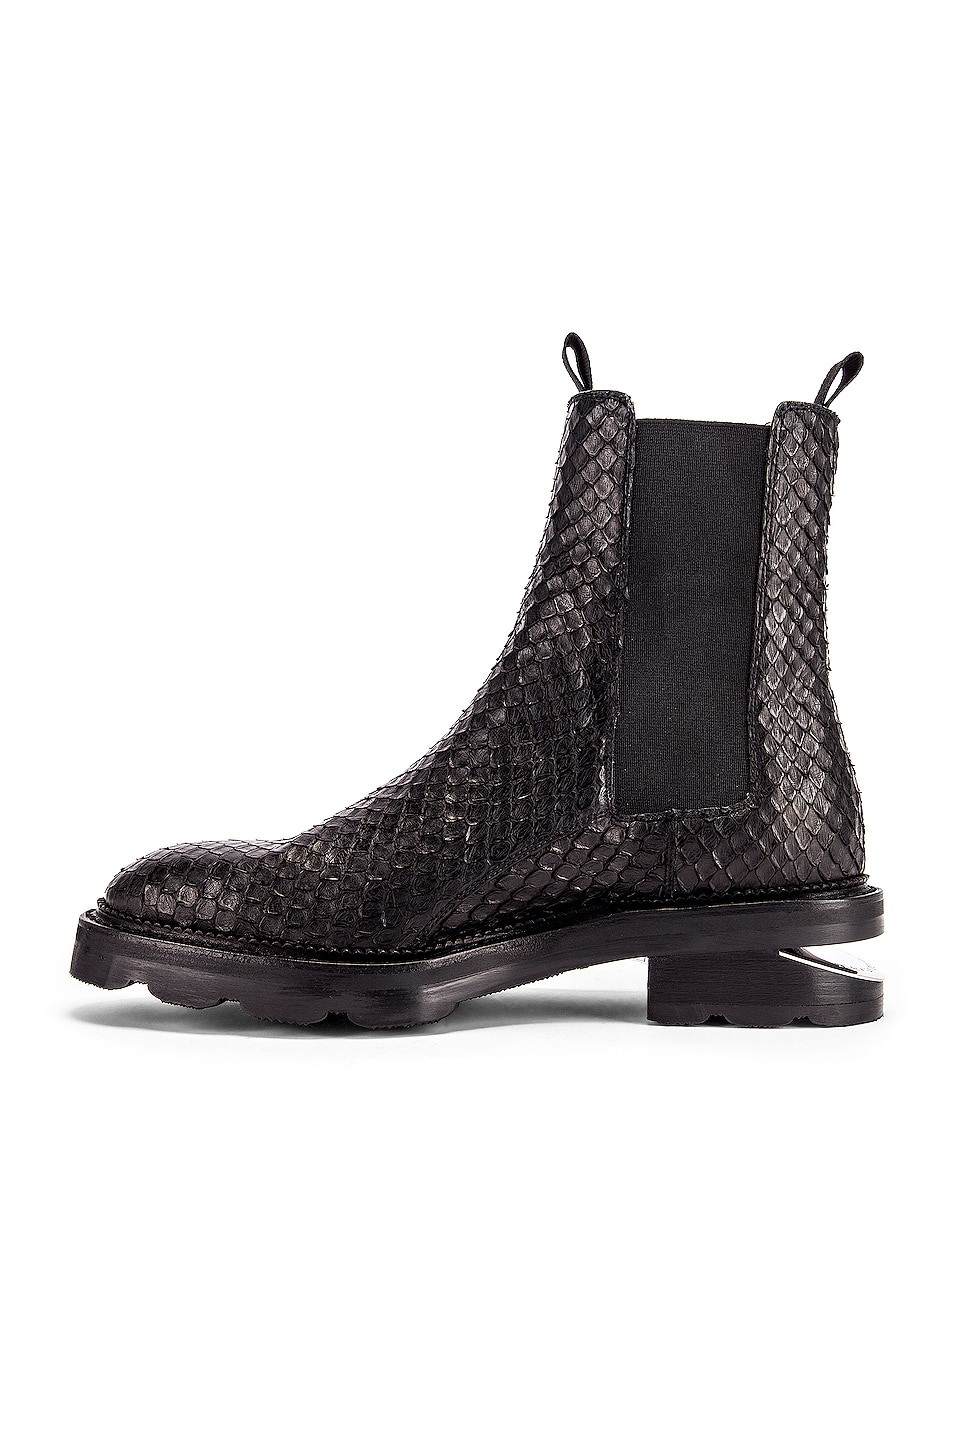 Image 5 of Alexander Wang Andy Anaconda Boot in Black